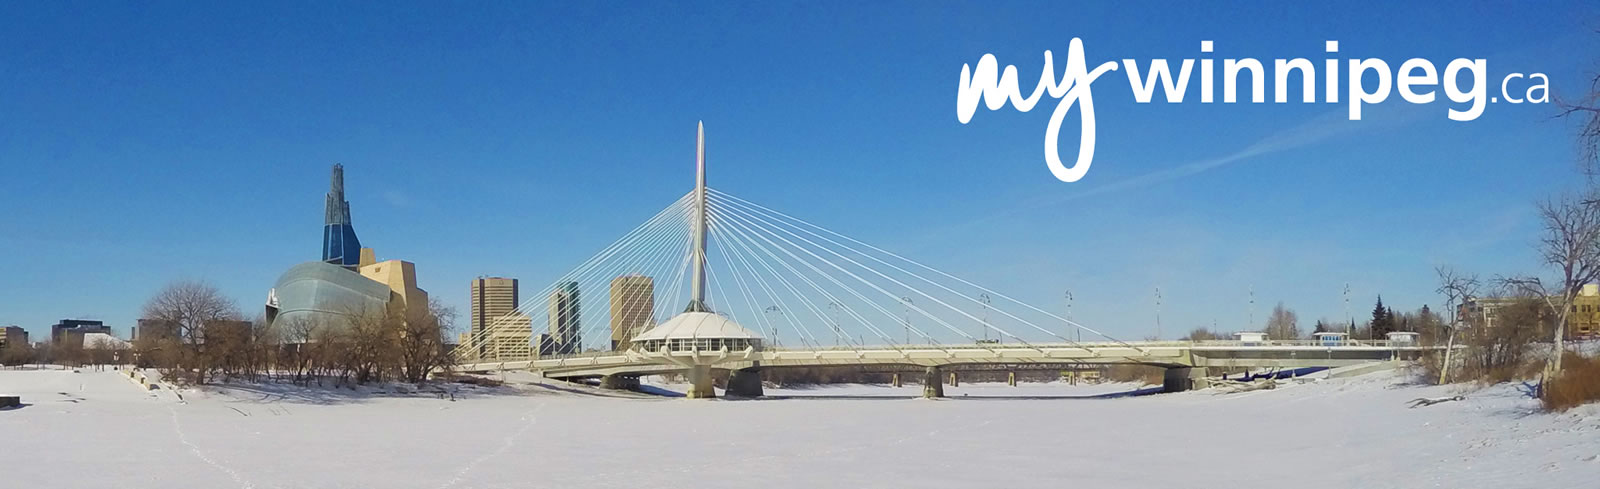 My Winnipeg - Winter Bridge